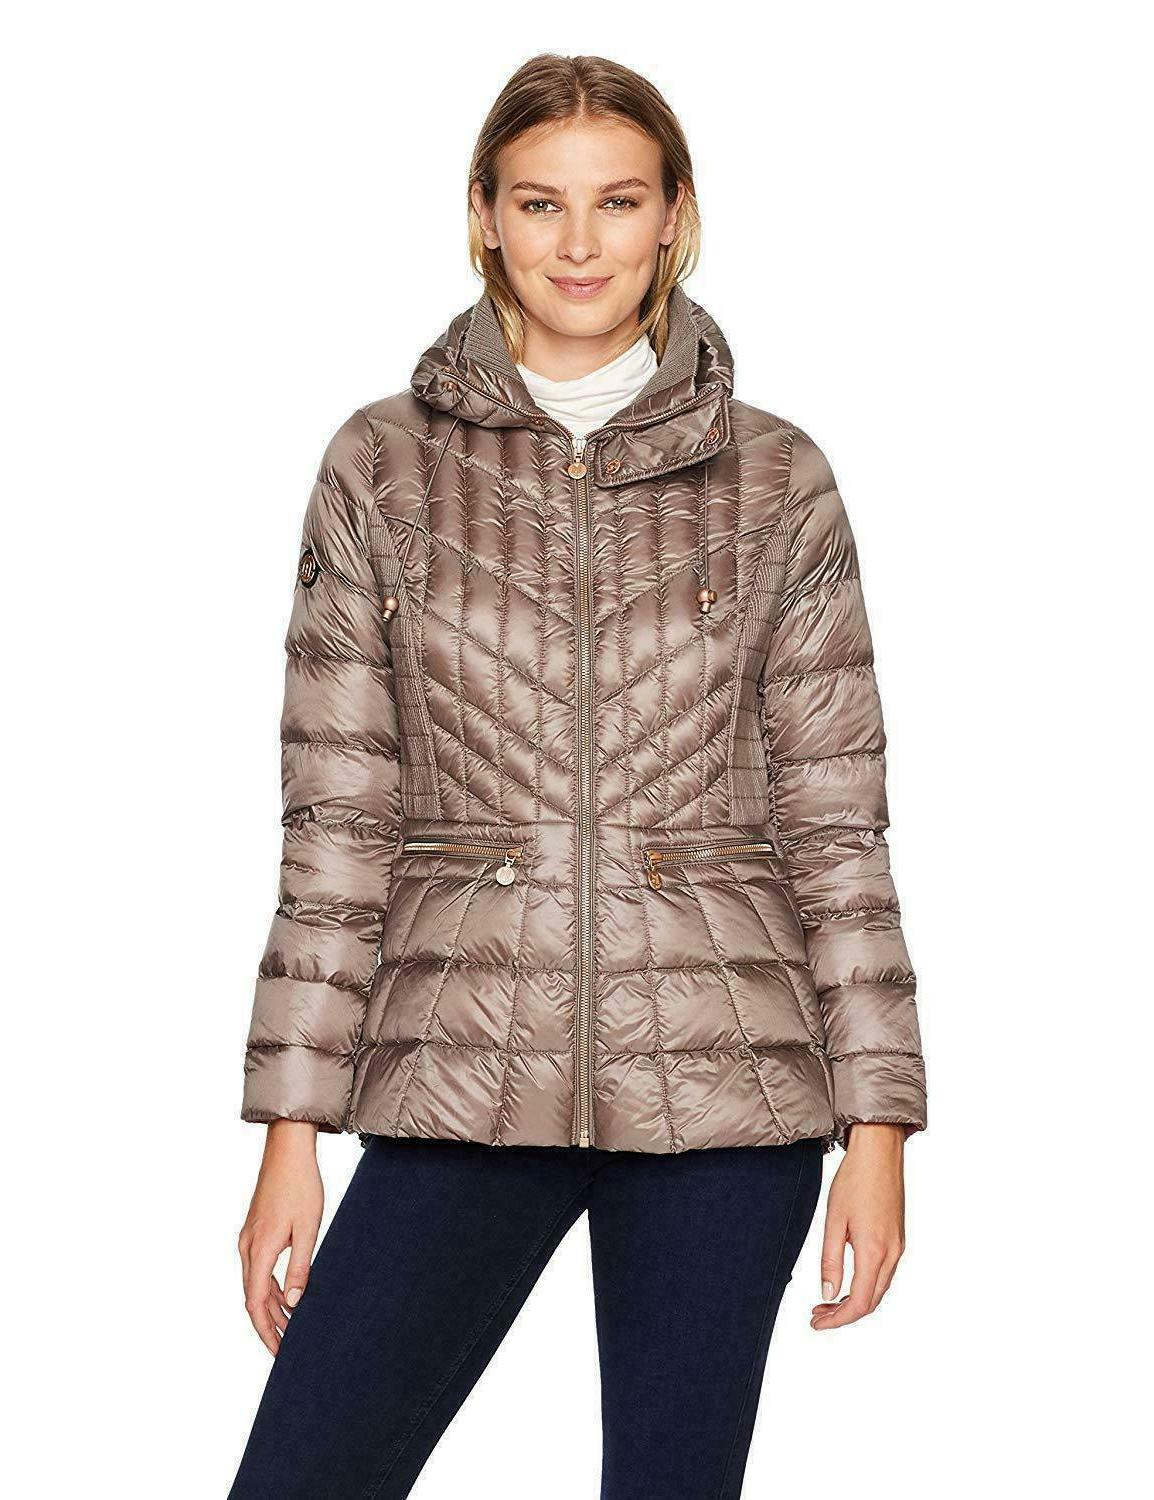 women s primaloft thermoplume packable jacket moonrock